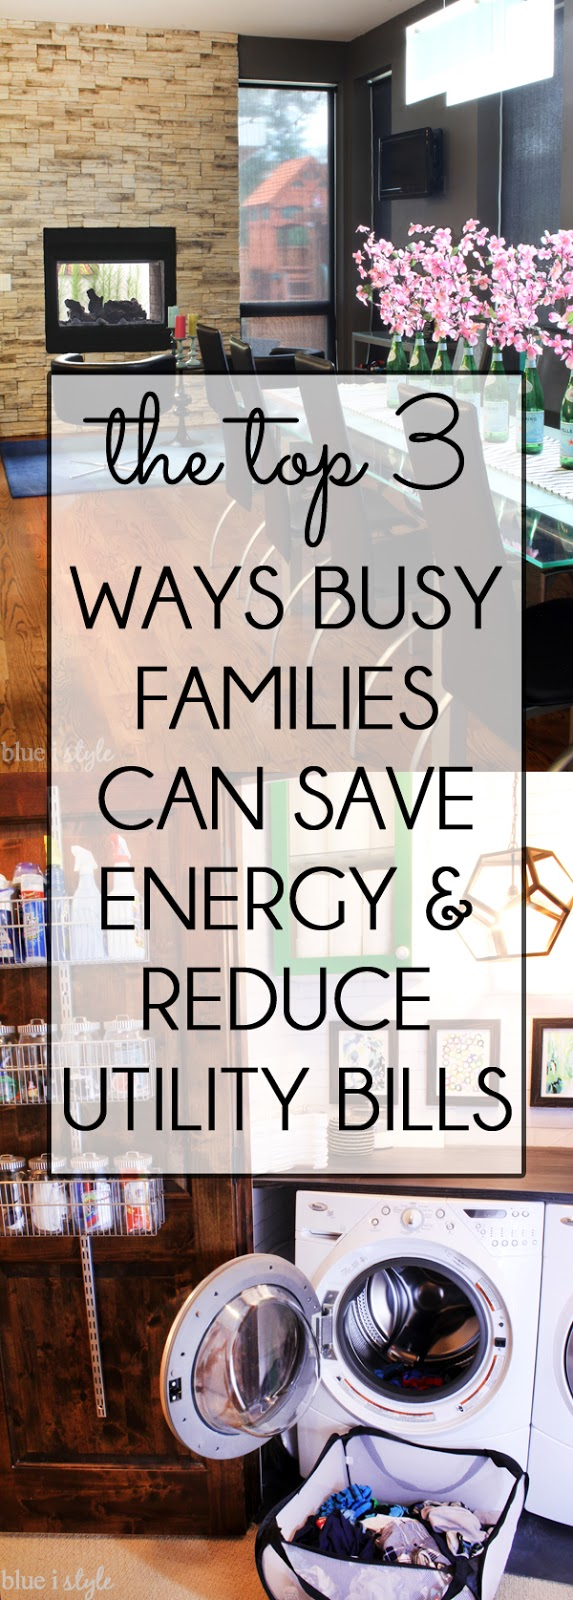 Energy saving tips for families